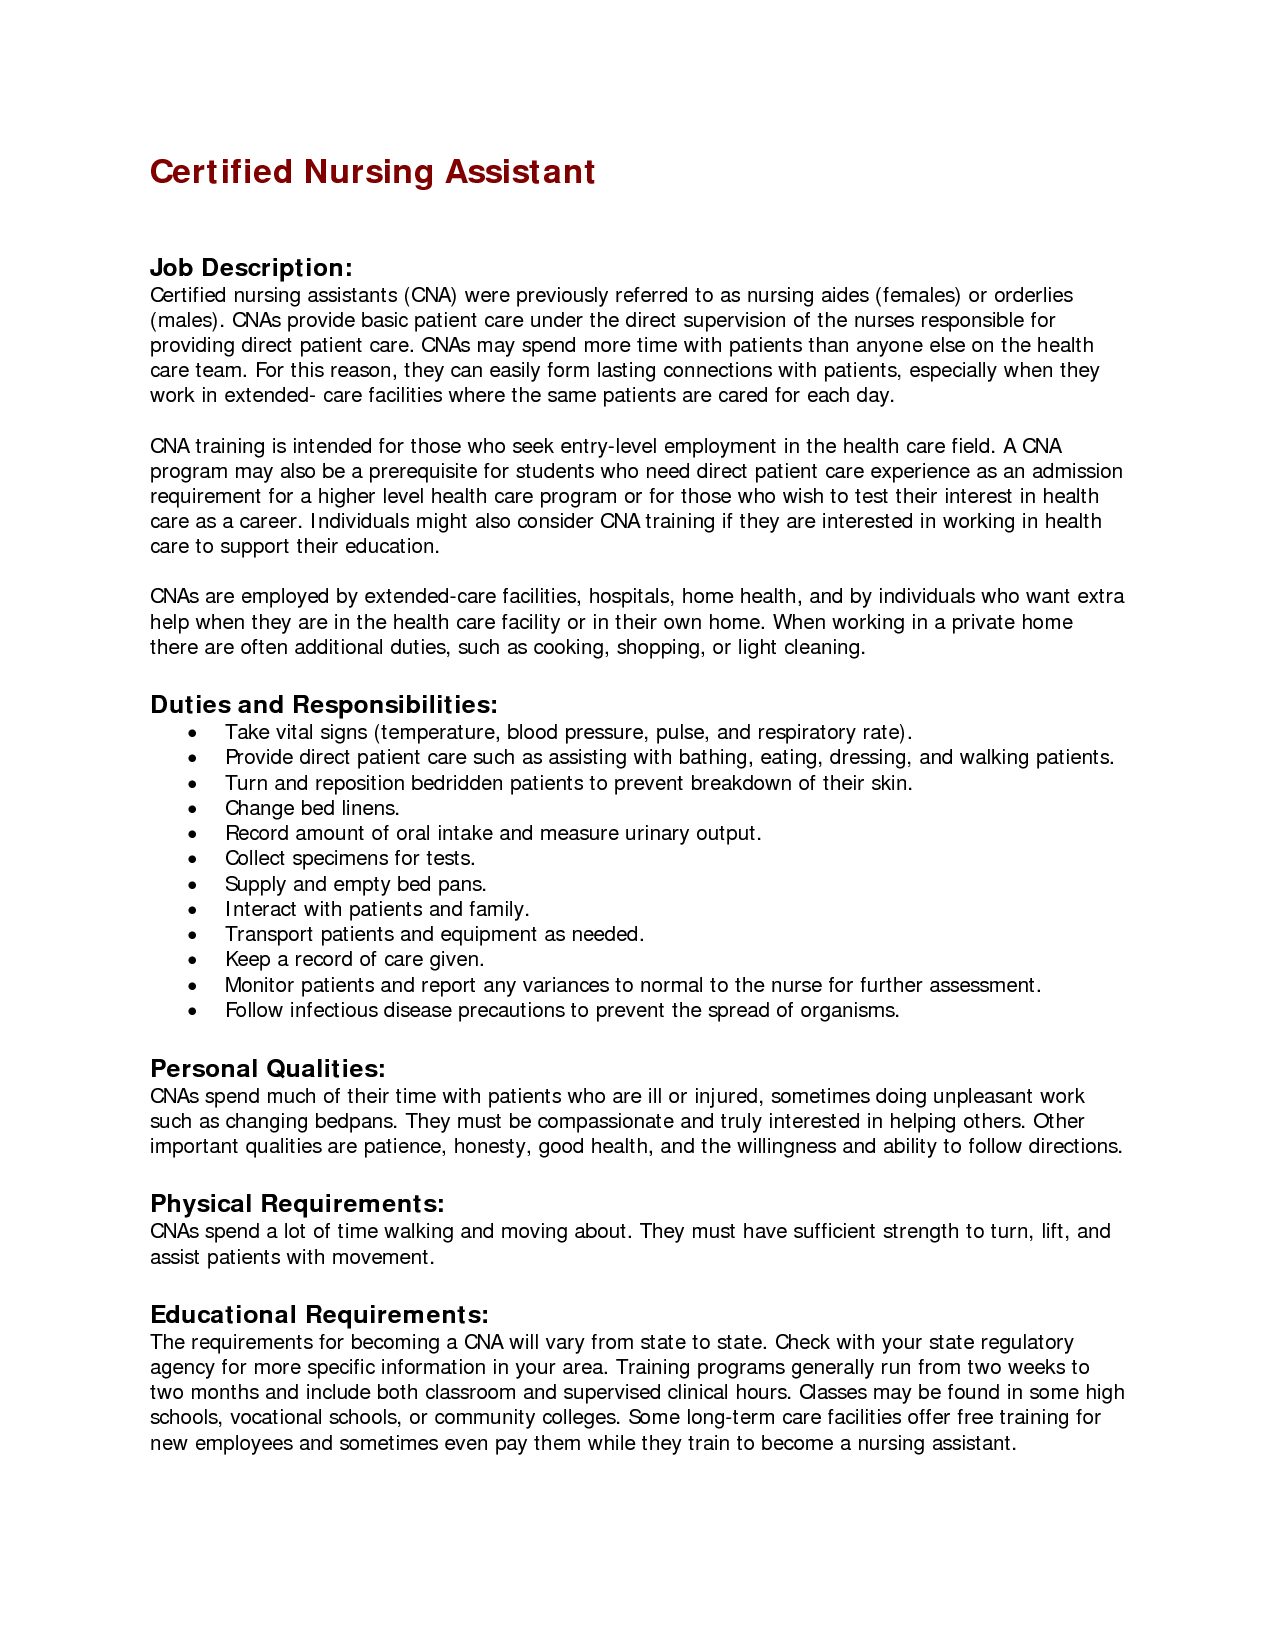 Exceptional Cna Duties Resume Format Certified Nursing Assistant Job Duties For Cna Job Duties Resume